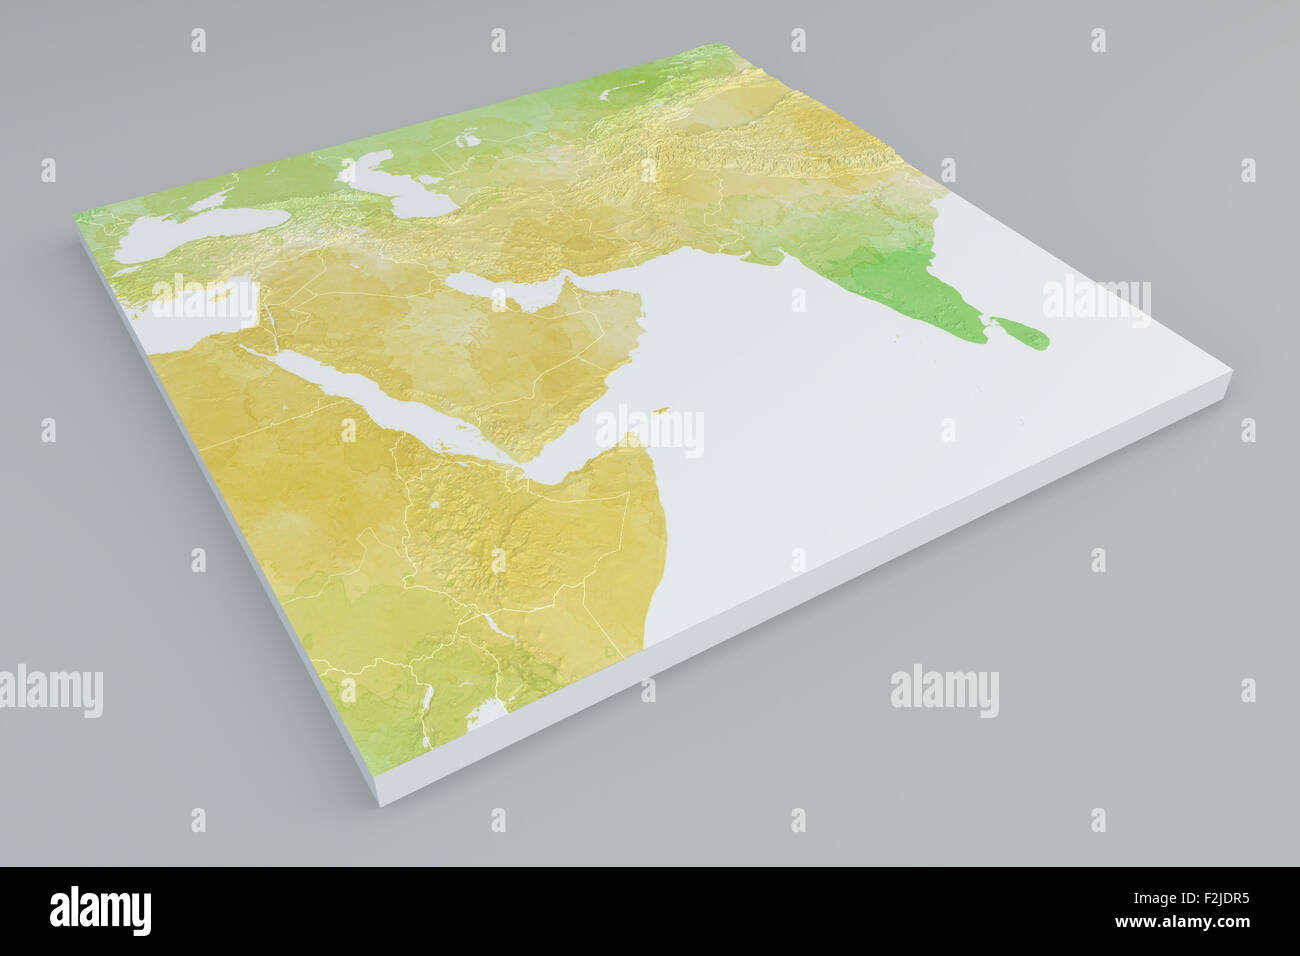 Flat physical map section of Middle East on grey background ...